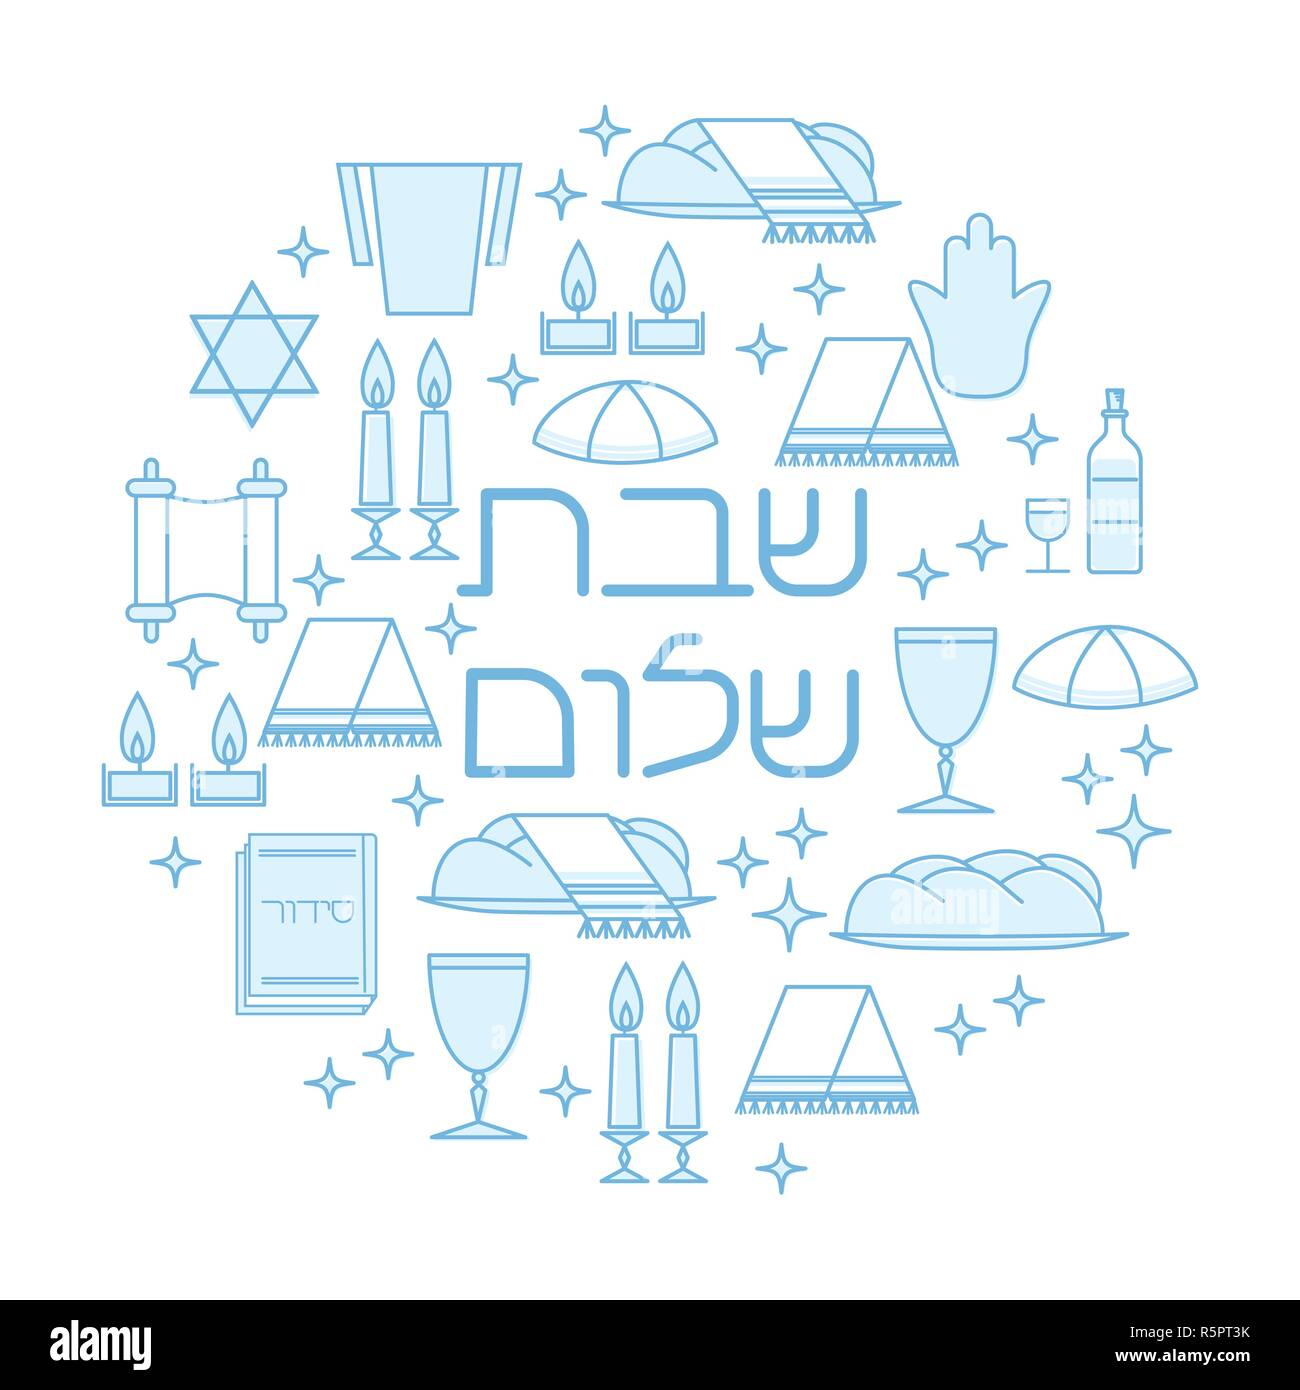 Shabbat Shalom card with Star of David, candles, kiddush cup and challah. Line art style. Hebrew text 'Shabbat Shalom'. Vector illustration. Isolated on white. - Stock Image